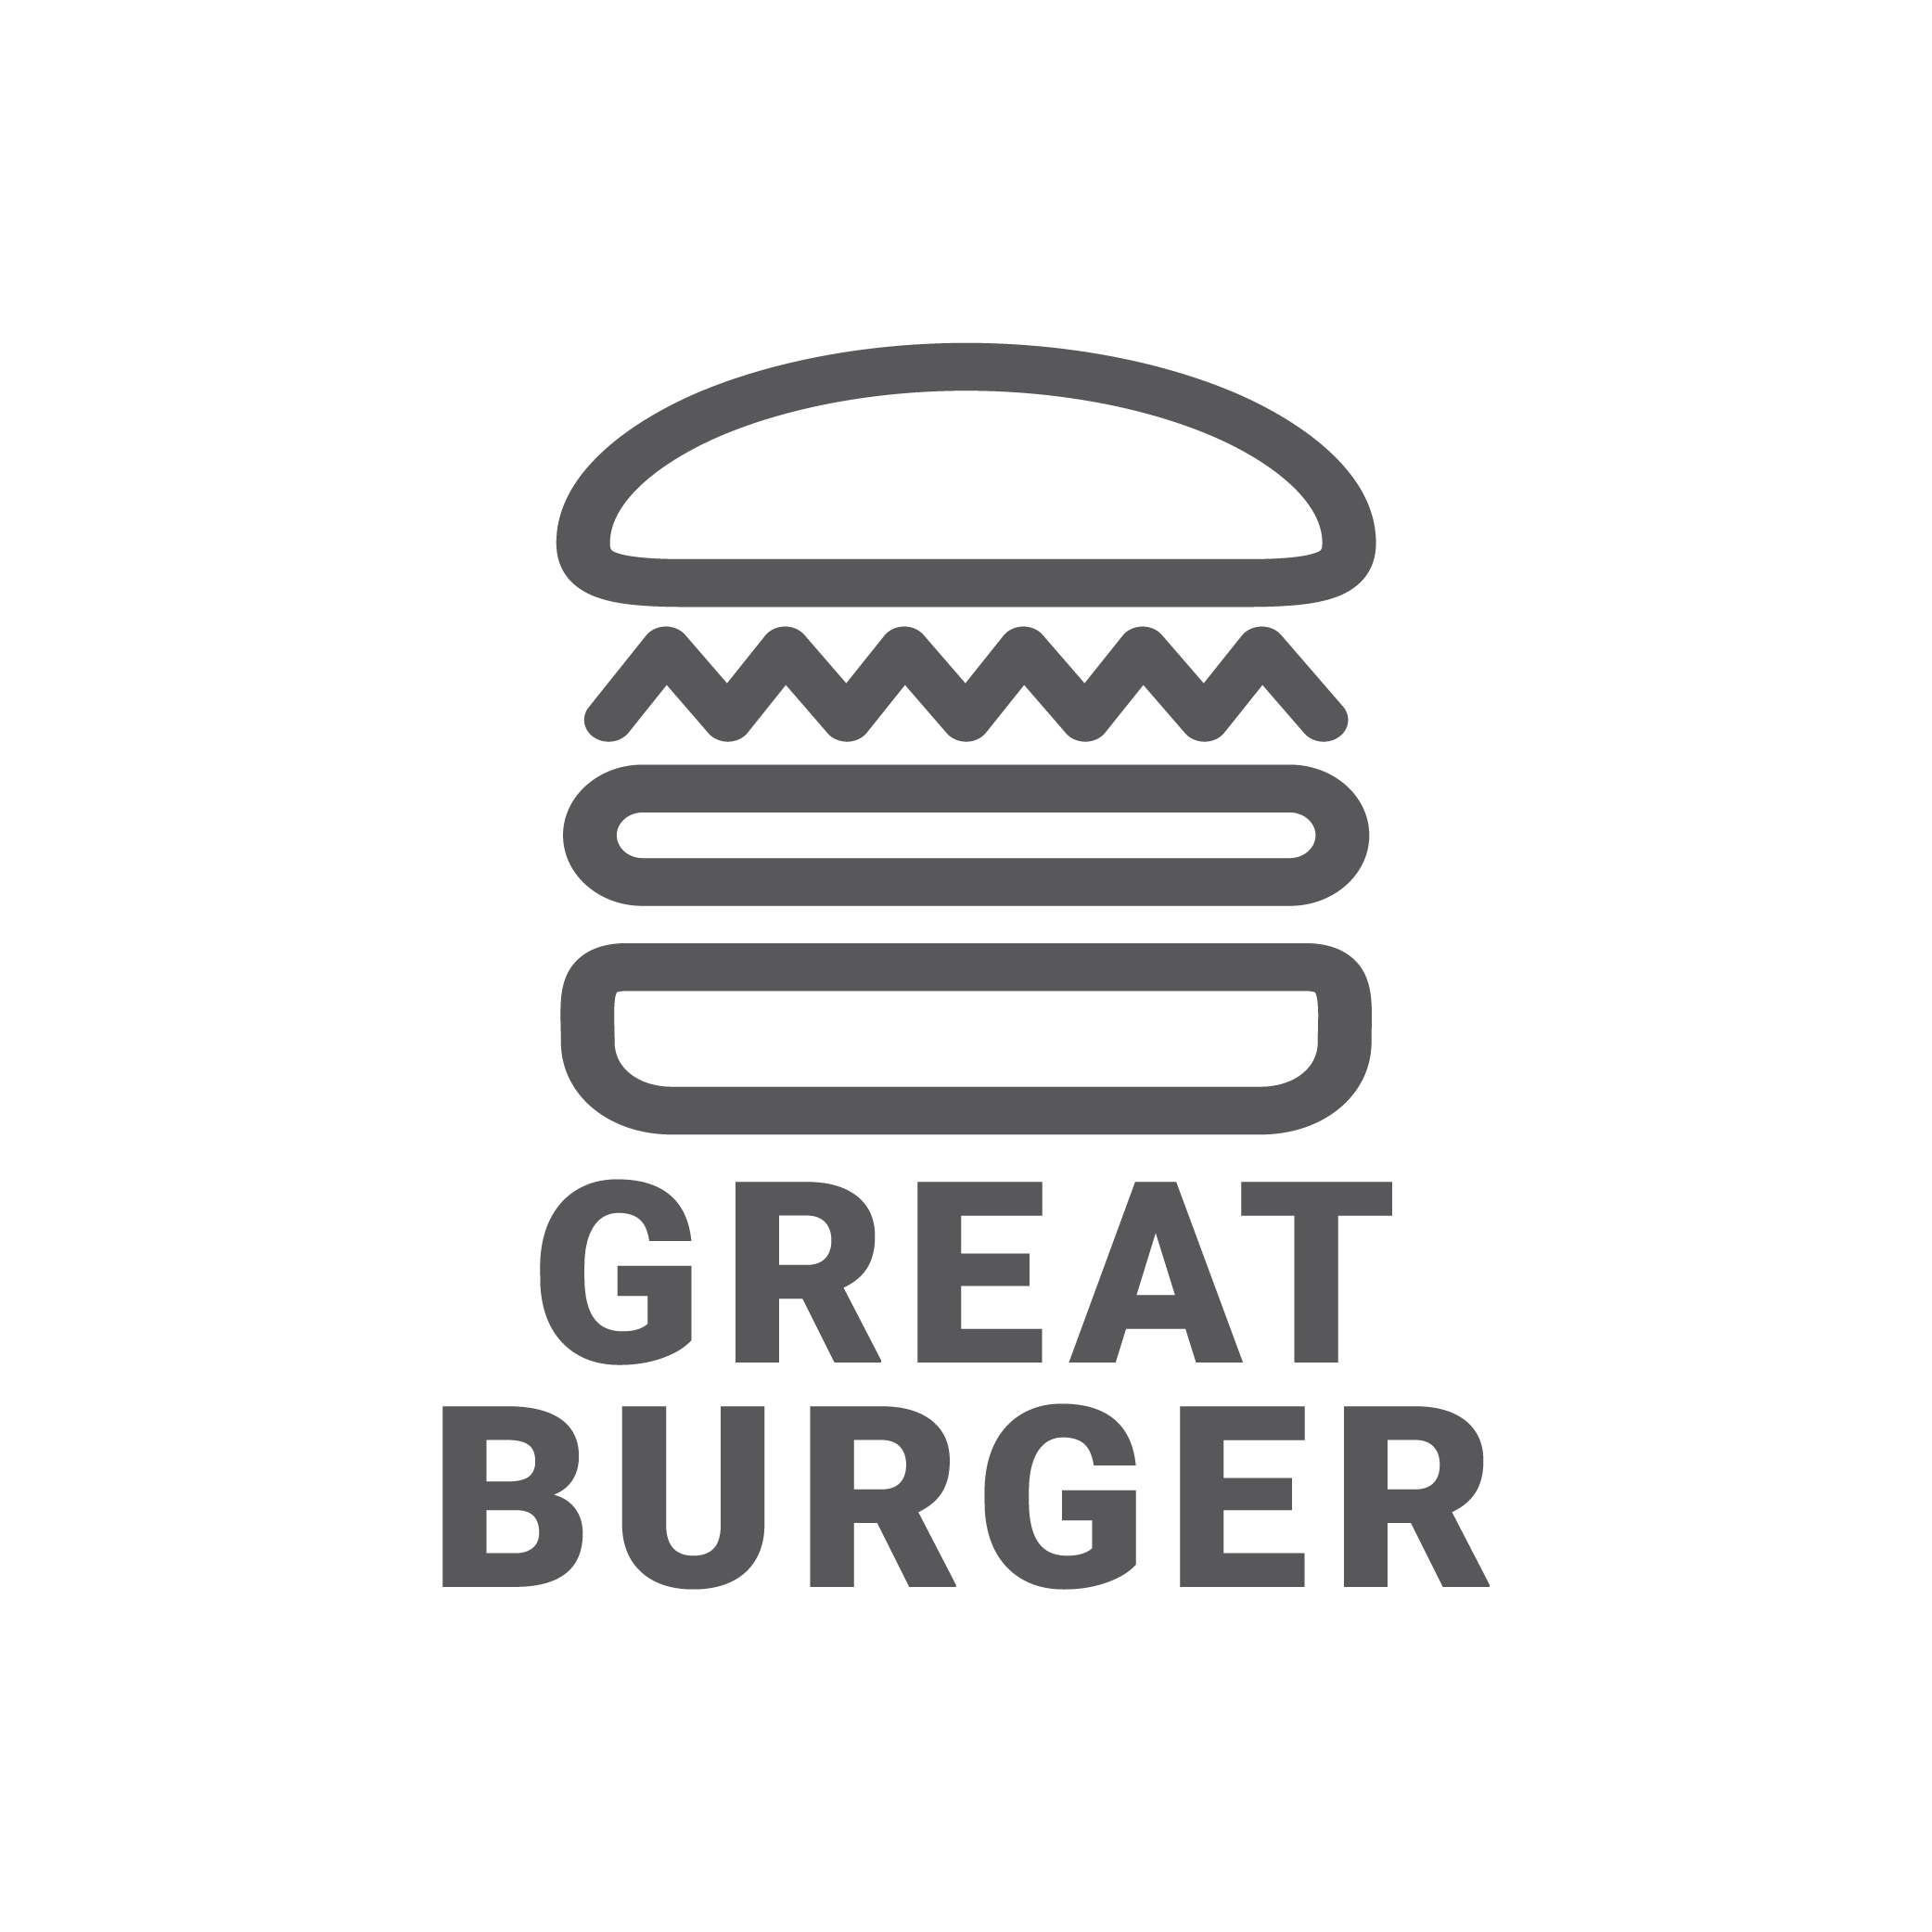 Great Burger logo